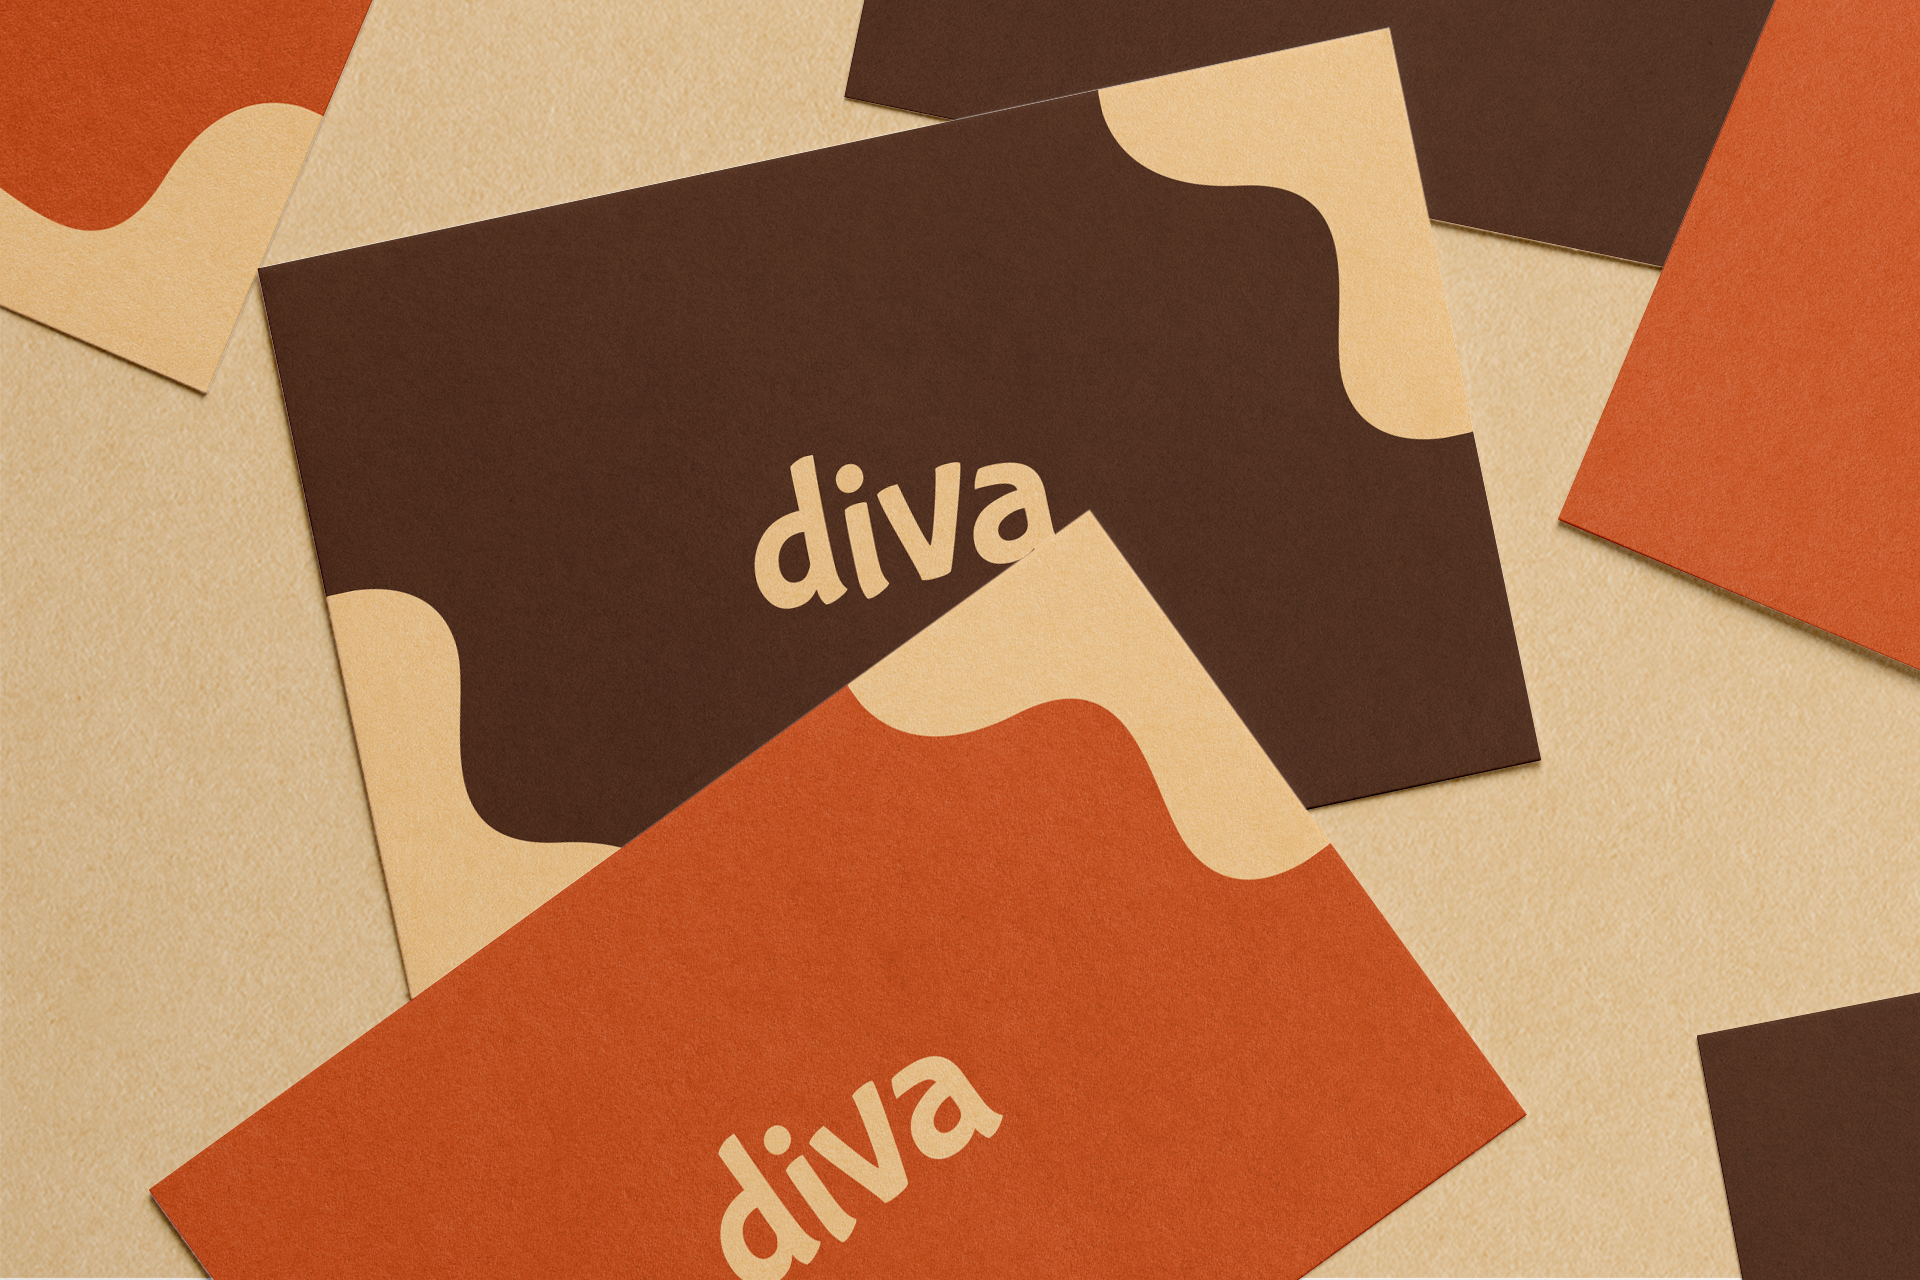 Diva Confectionery business cards